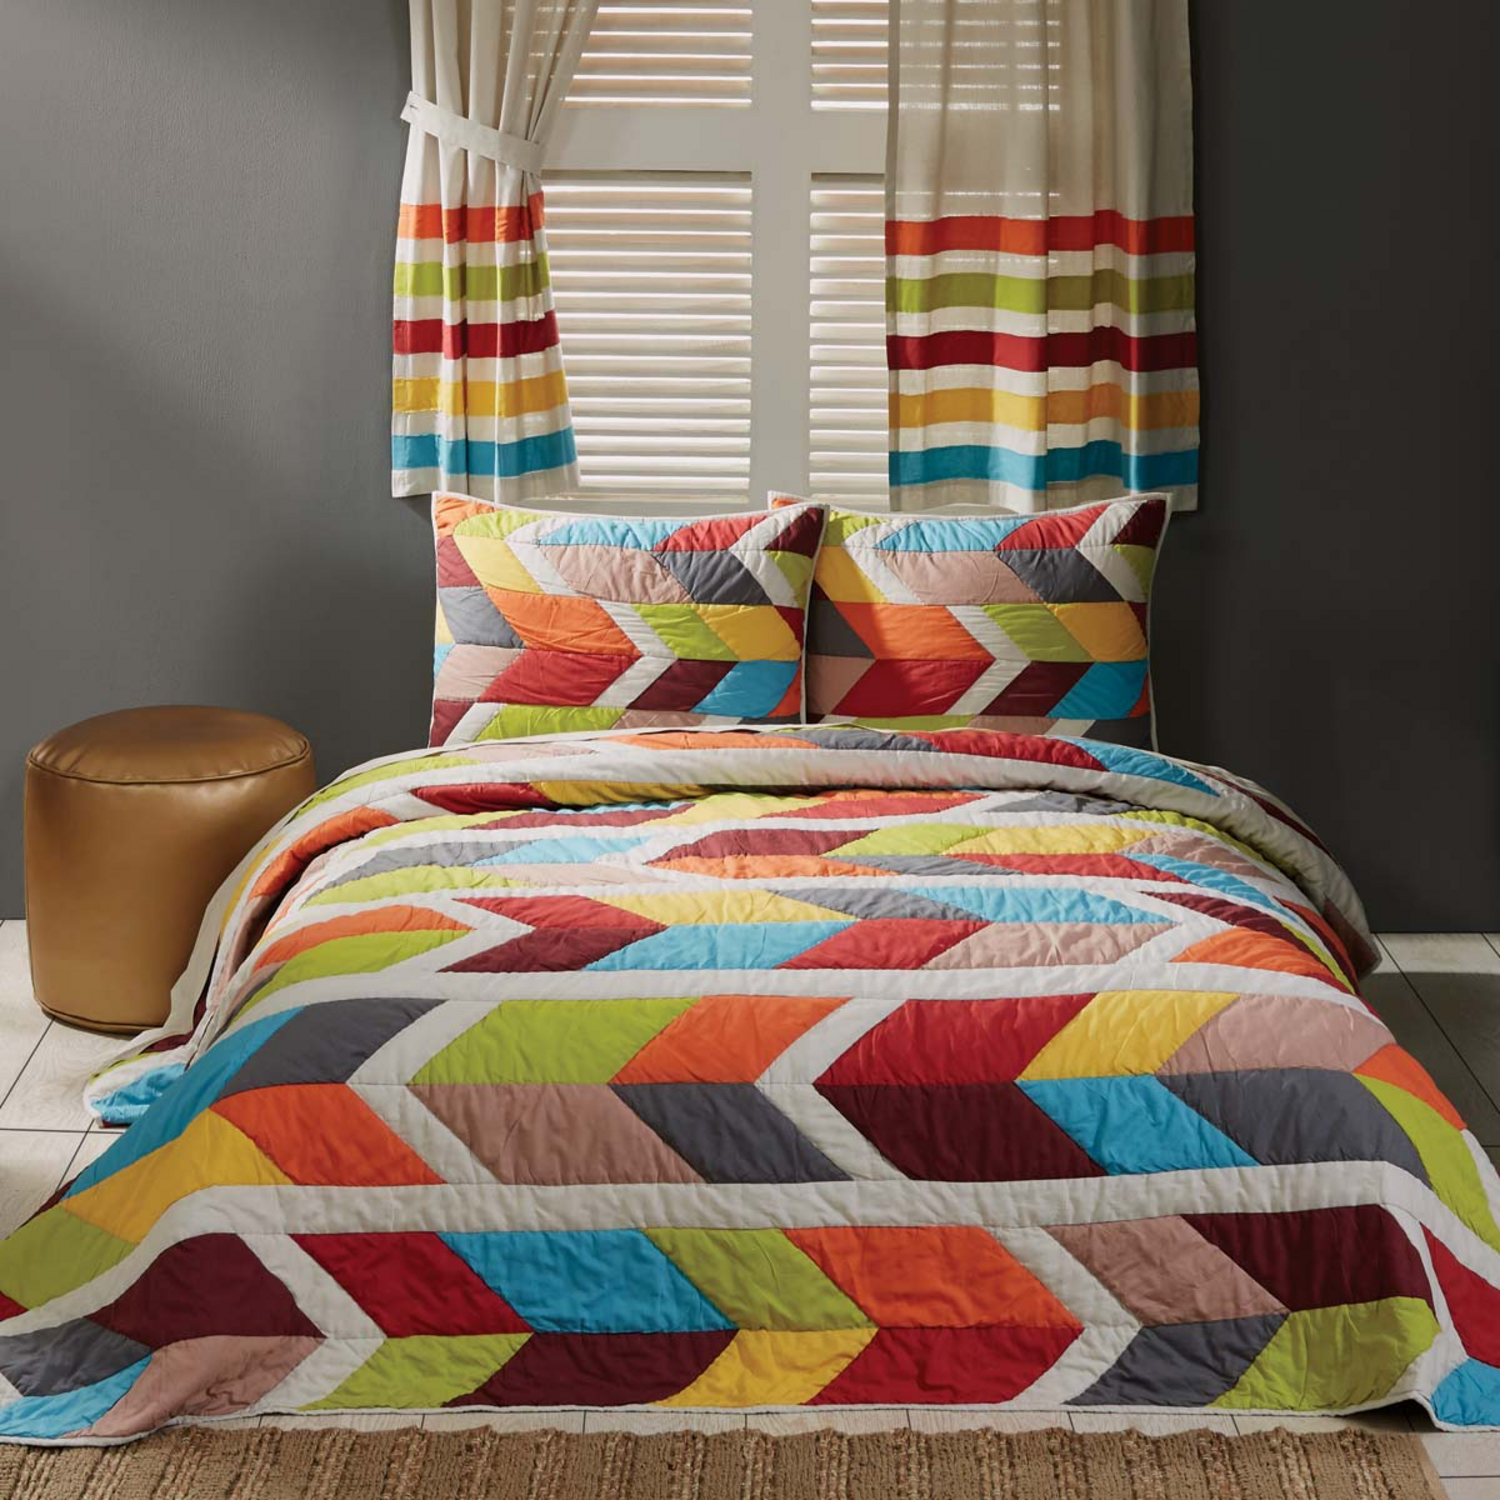 Rowan By Vhc Brands Quilts Beddingsuperstore Com